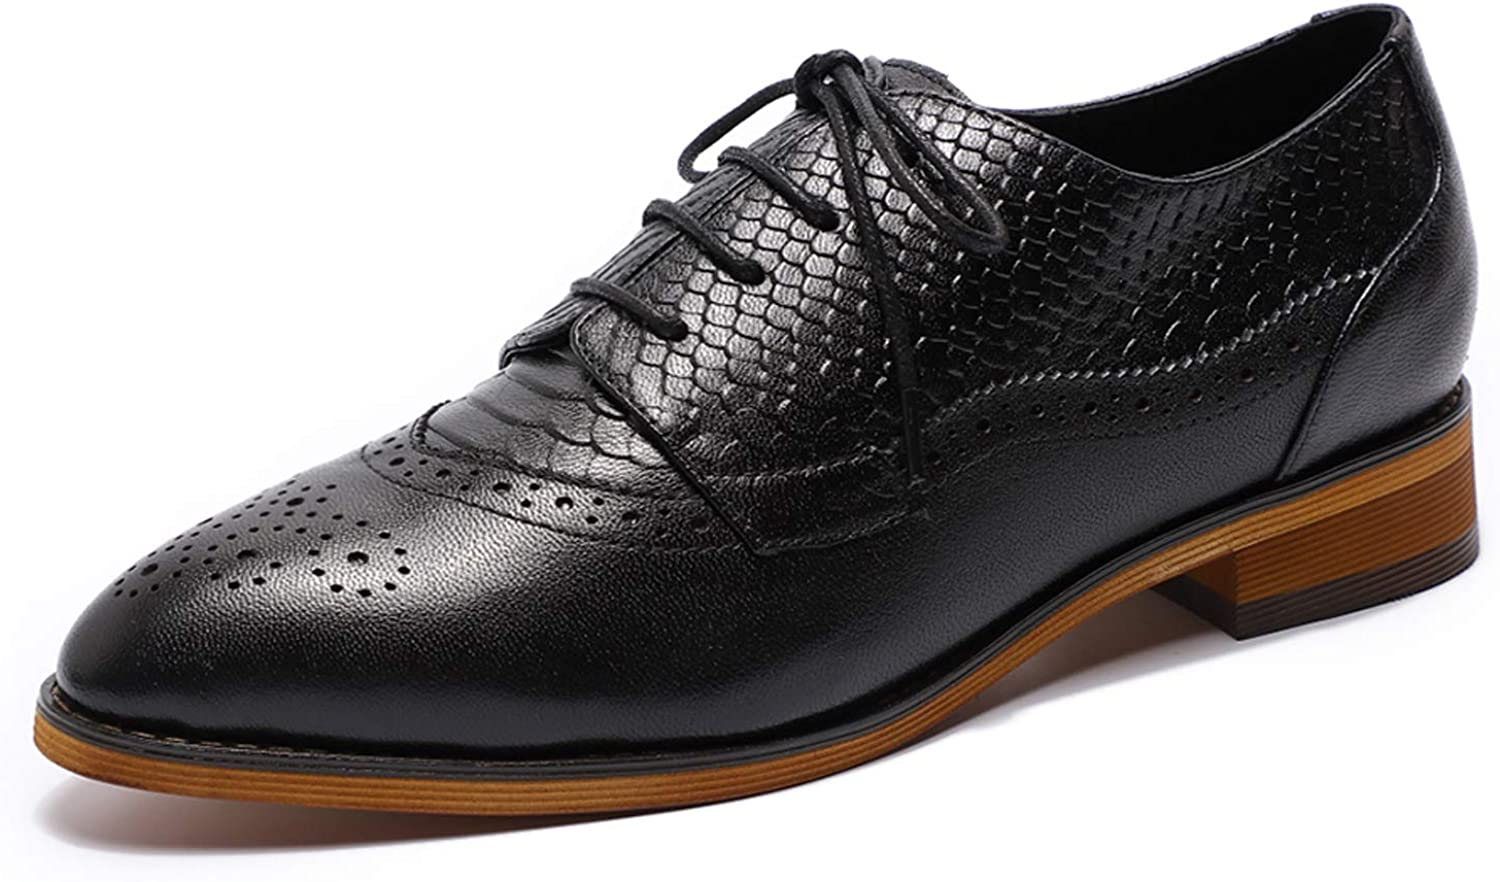 MIKCON Women's Leather Super sale Oxford Dress Department store Up Oxf Perforated Lace Shoes